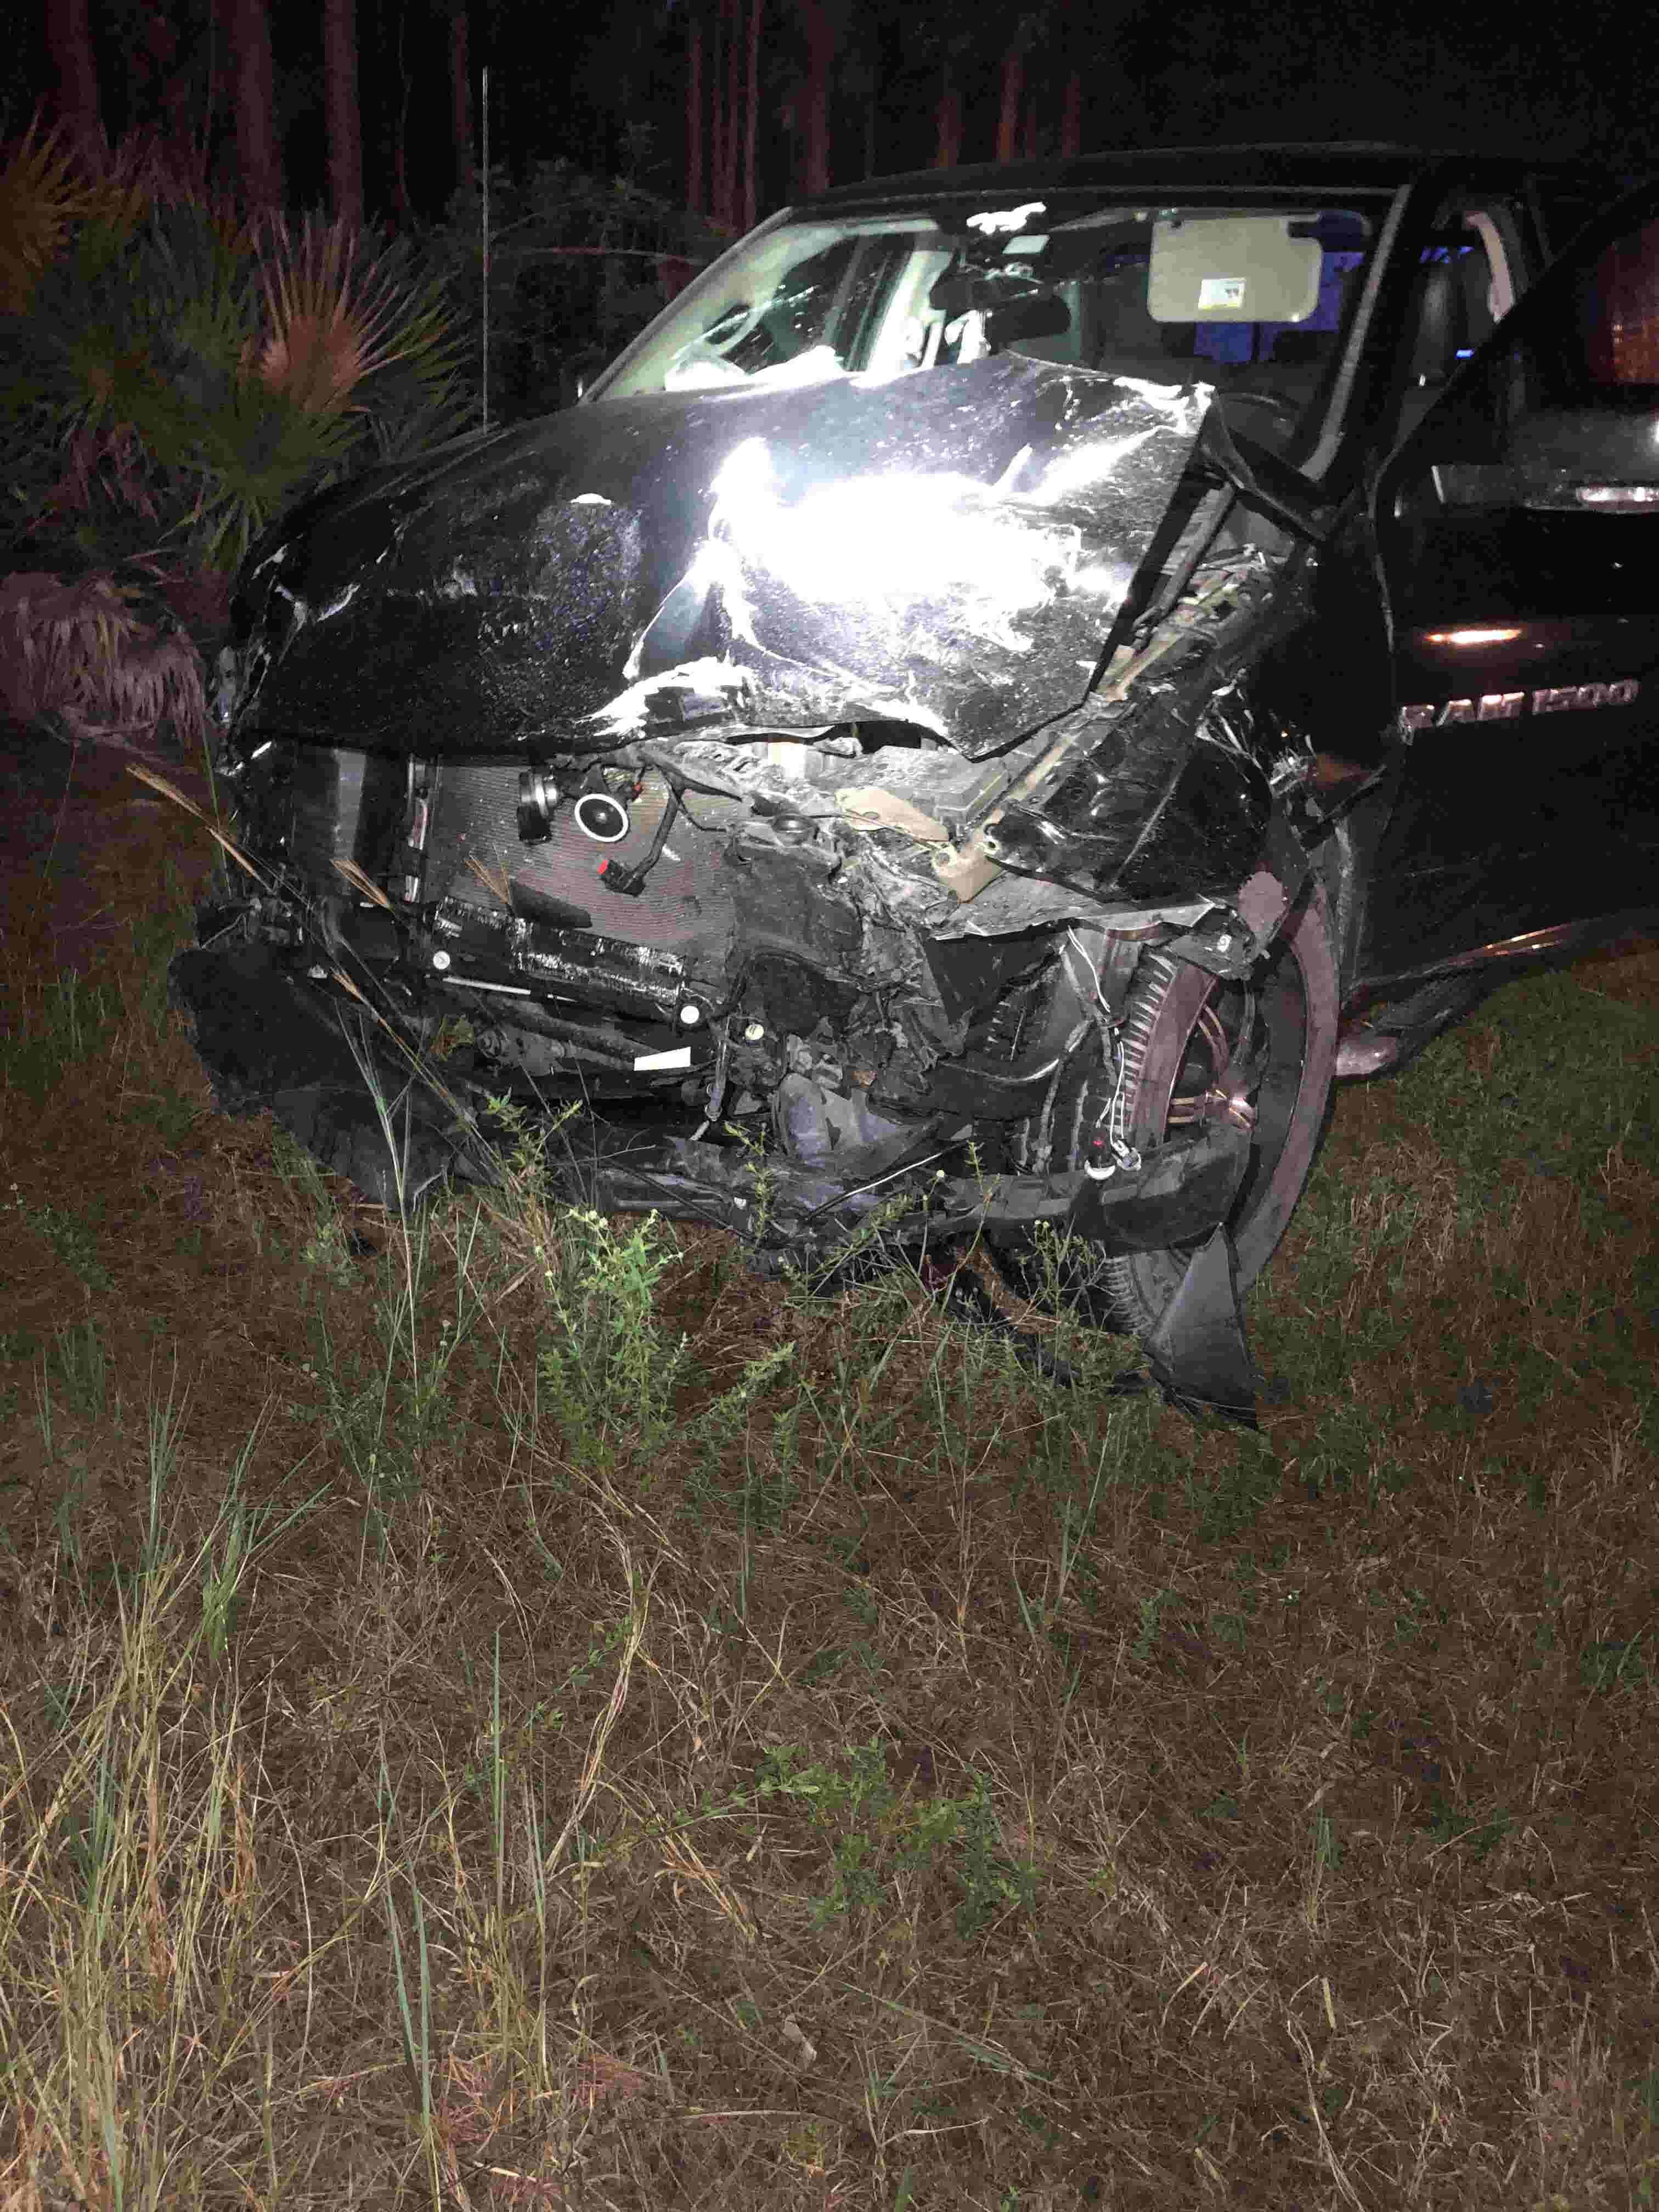 2019 off to a deadly start for Lee County roadways with 10